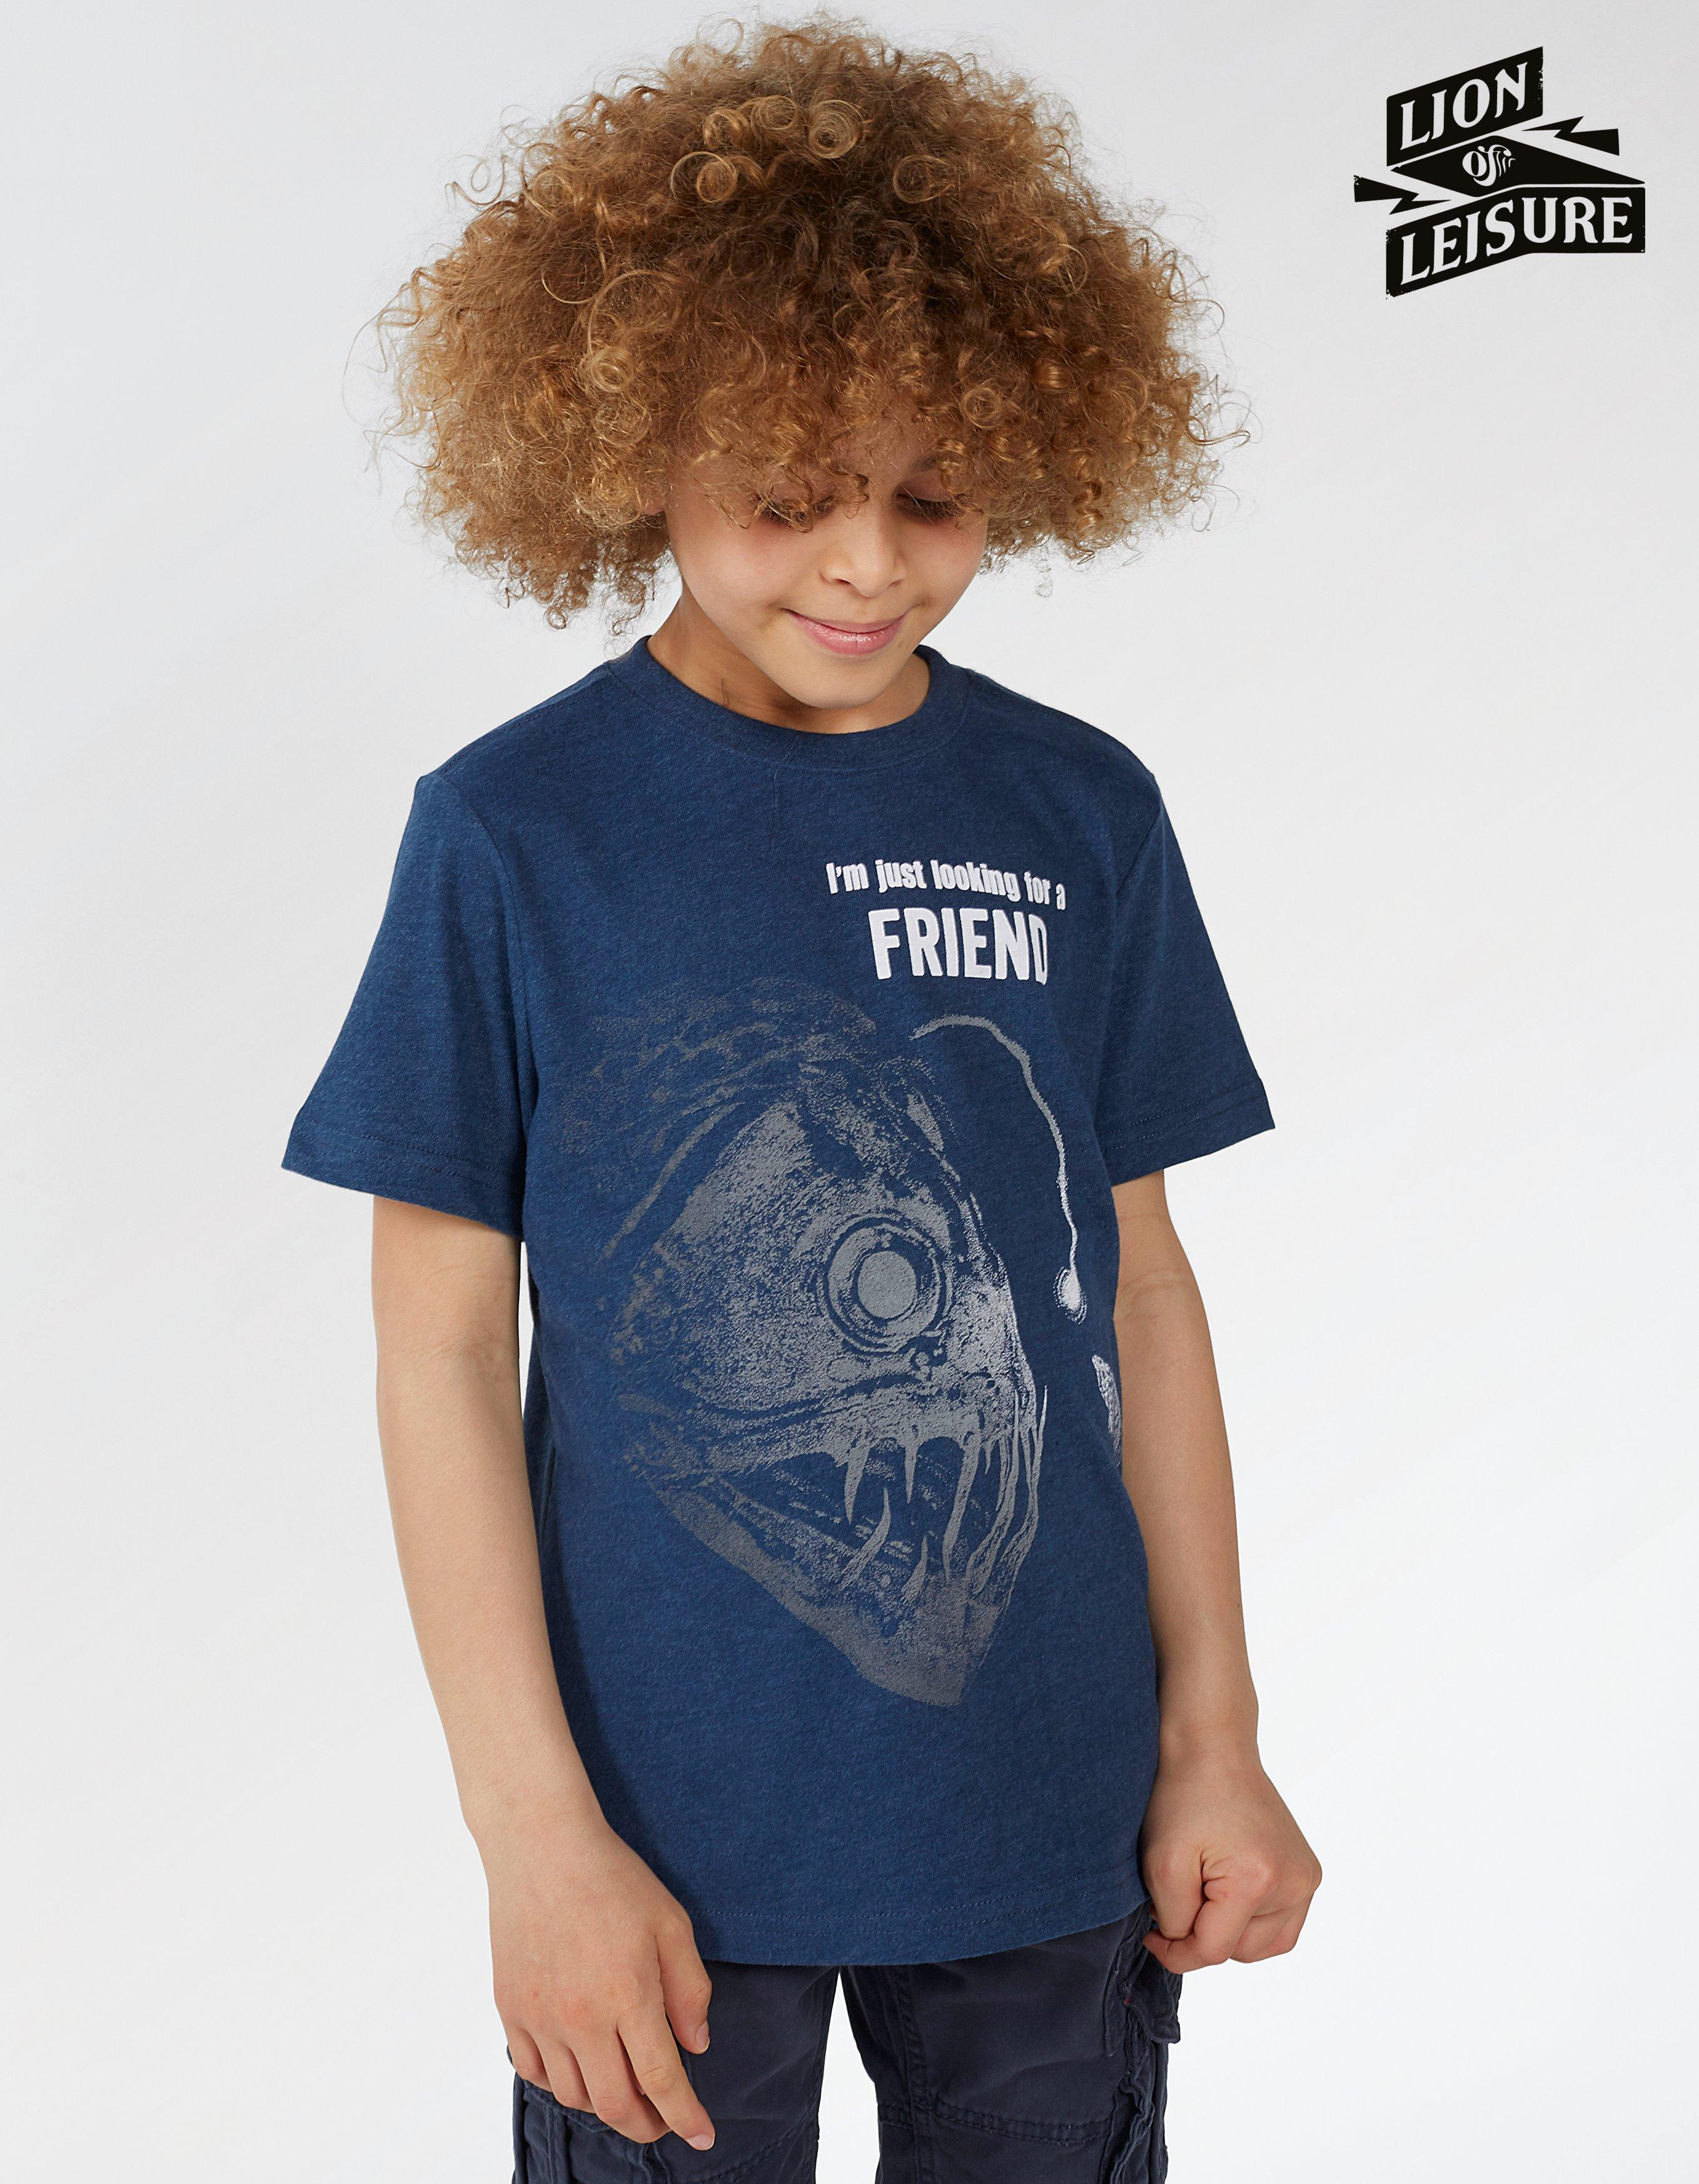 Lion of Leisure Angler T-Shirt